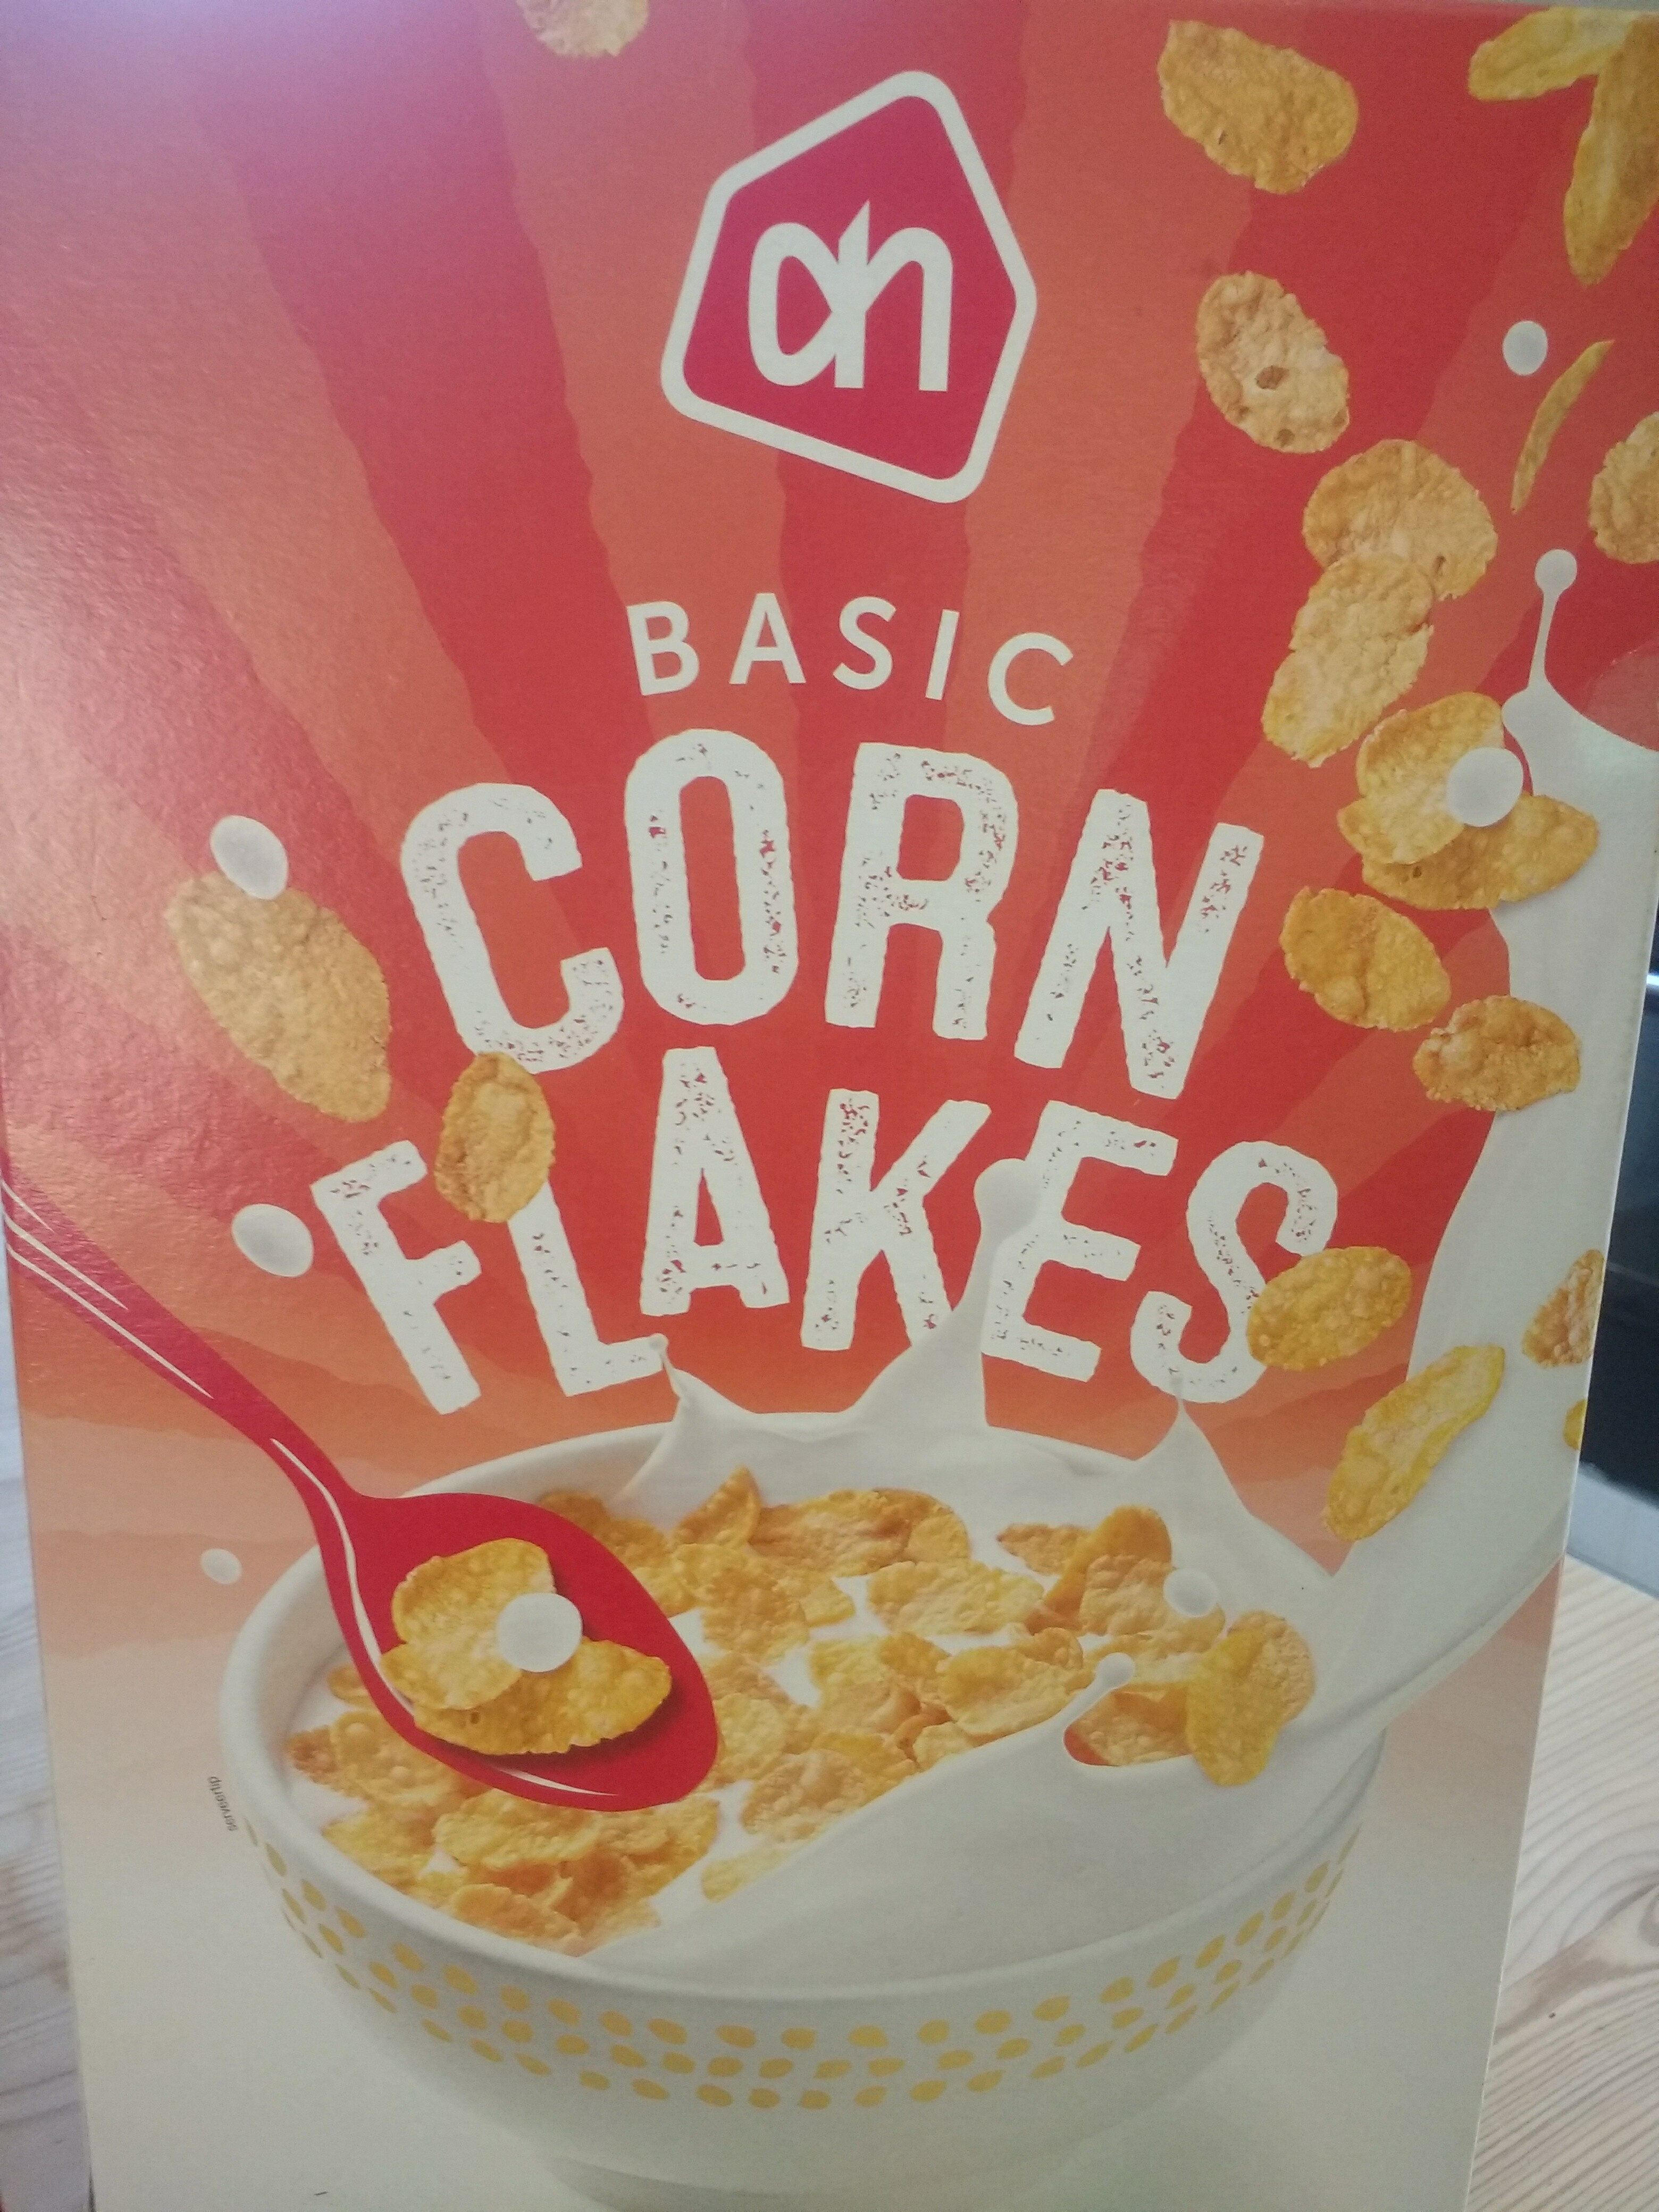 Cornflakes - Product - nl